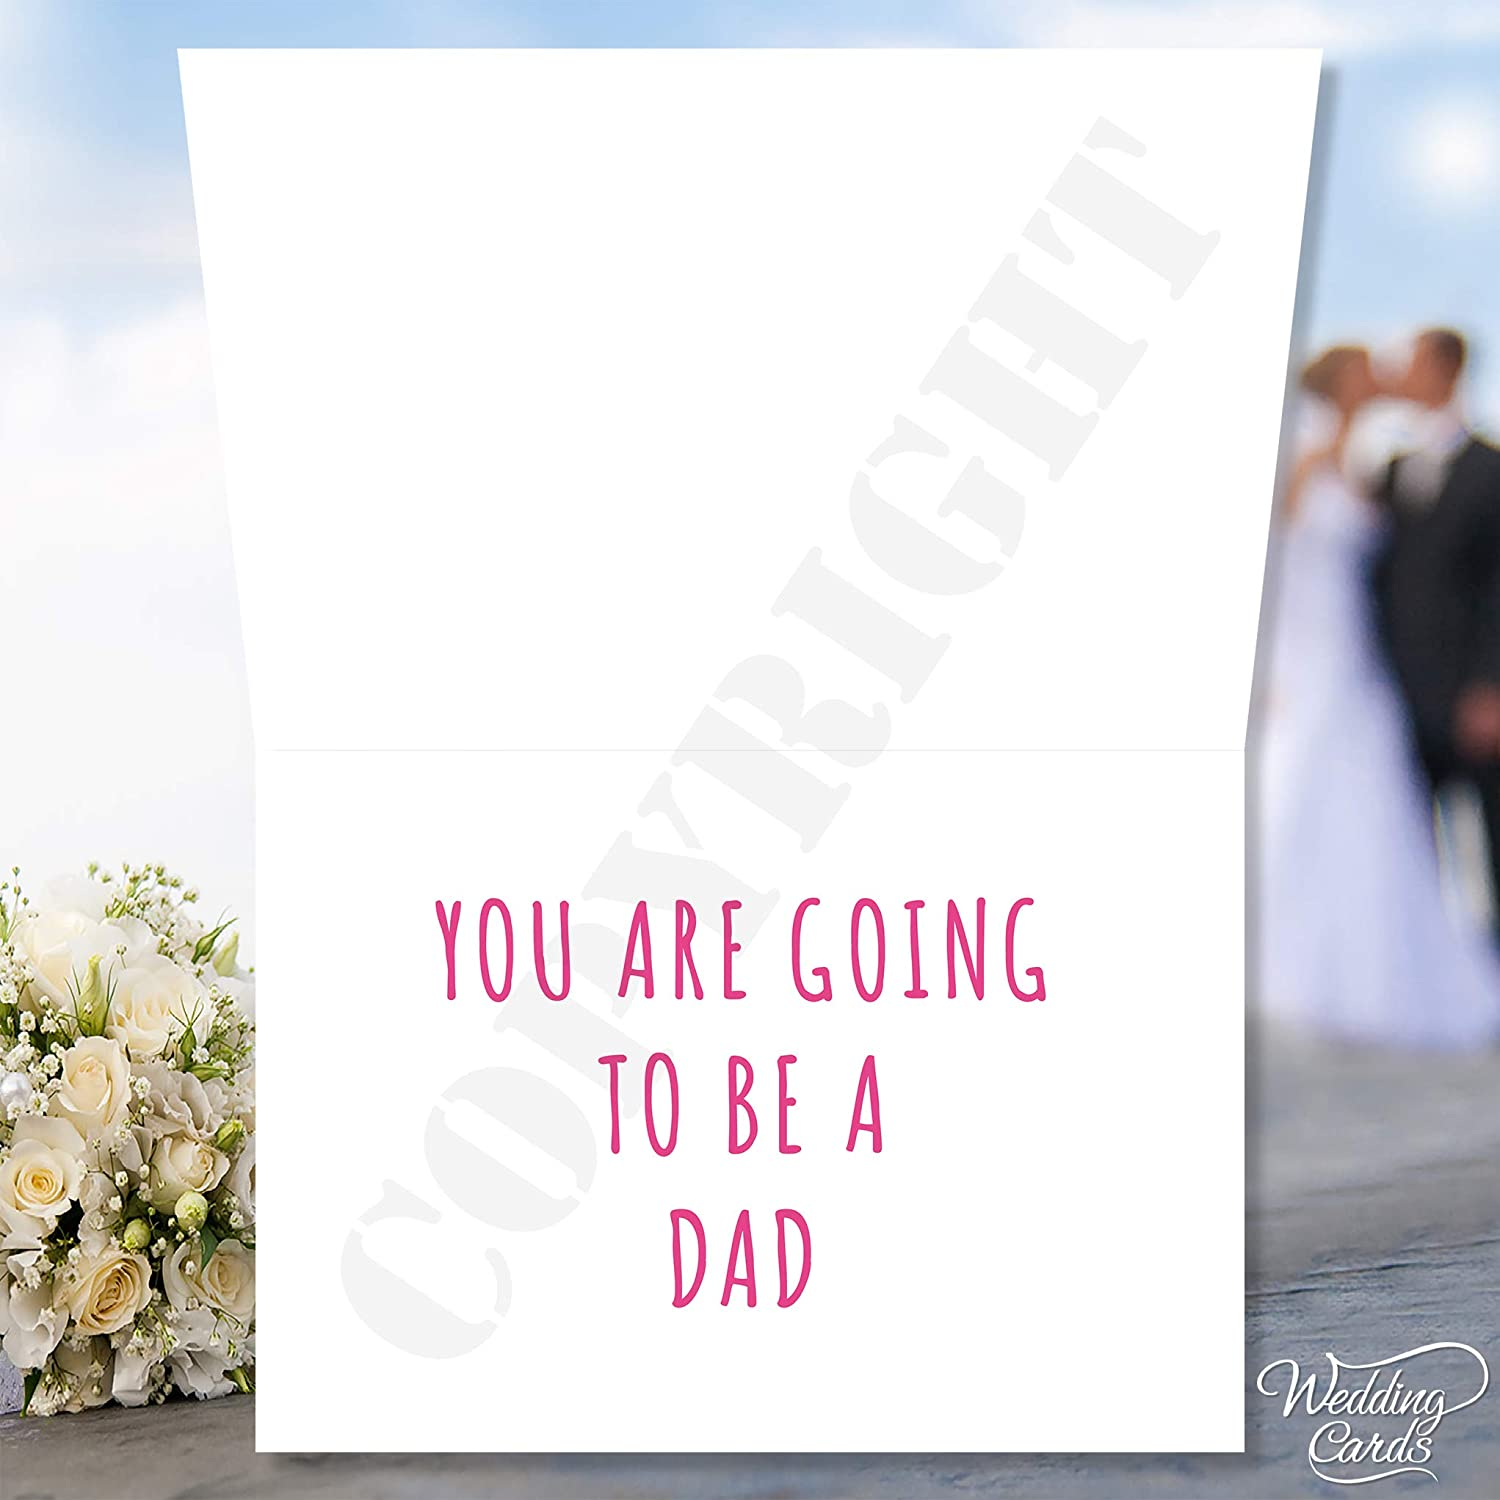 Wedding Cards Test Pregnancy Announcement Card You are going to be a Dad text can be personalised